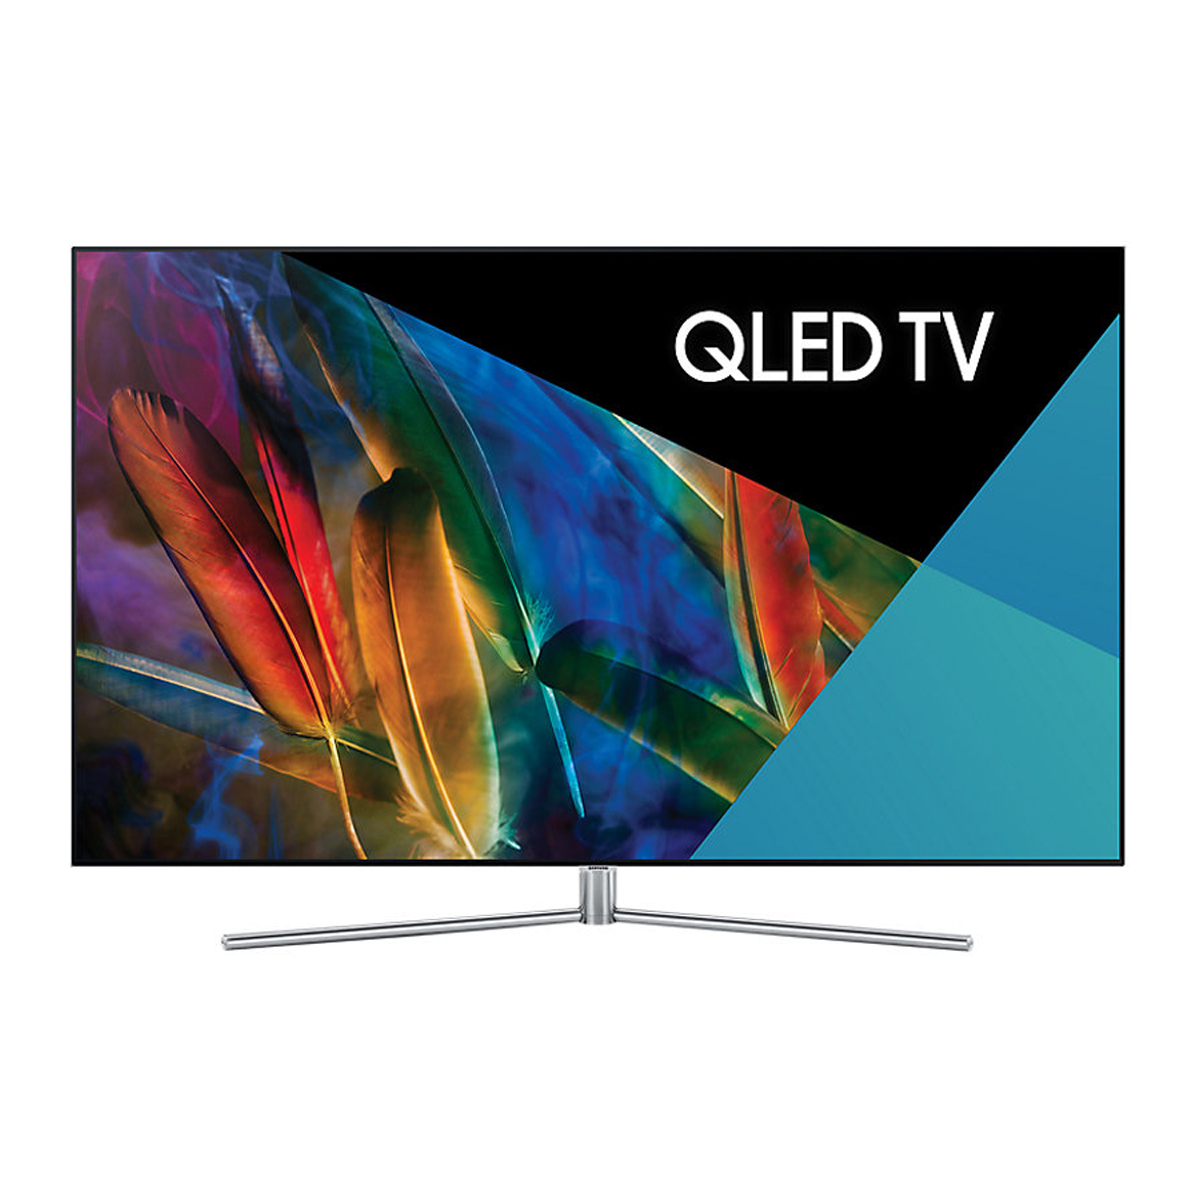 Samsung QA55Q7F 55 Inch 139cm Smart Ultra HD QLED TV